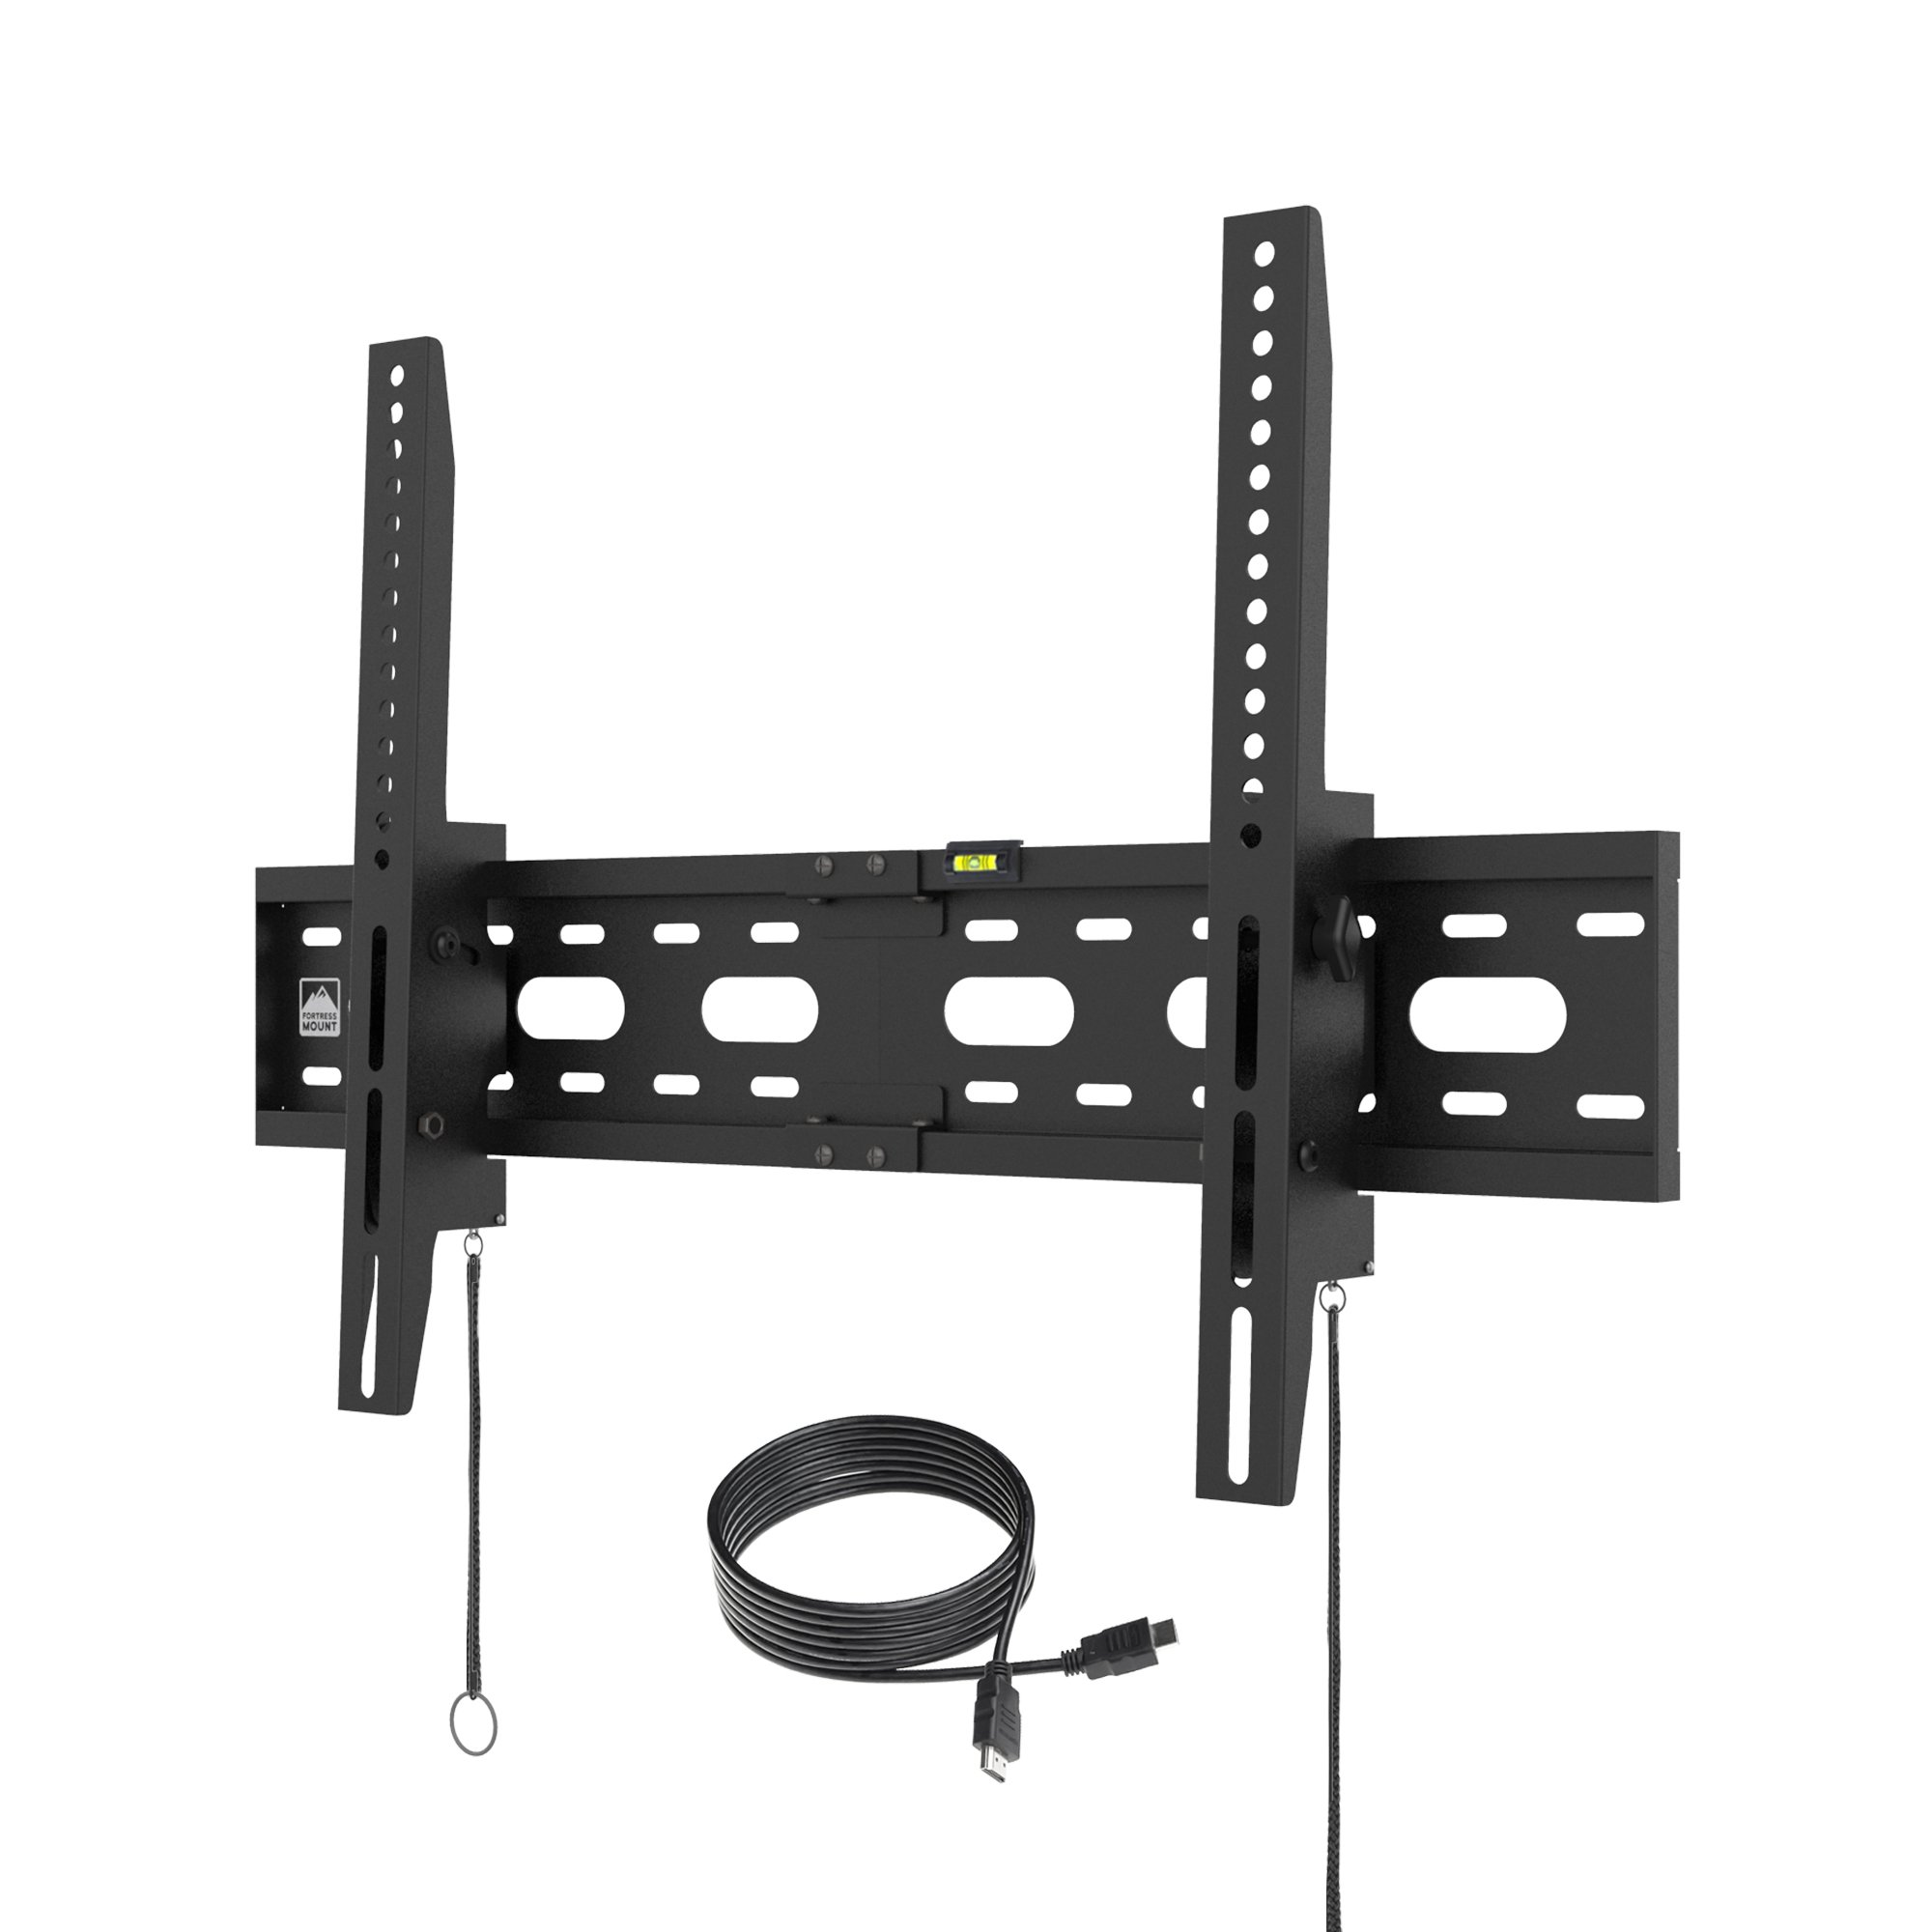 【2018】Fortress Mount TV Wall Mount for 40-75'' TVs up to 165 lbs with 9-feet Braided HDMI Cable